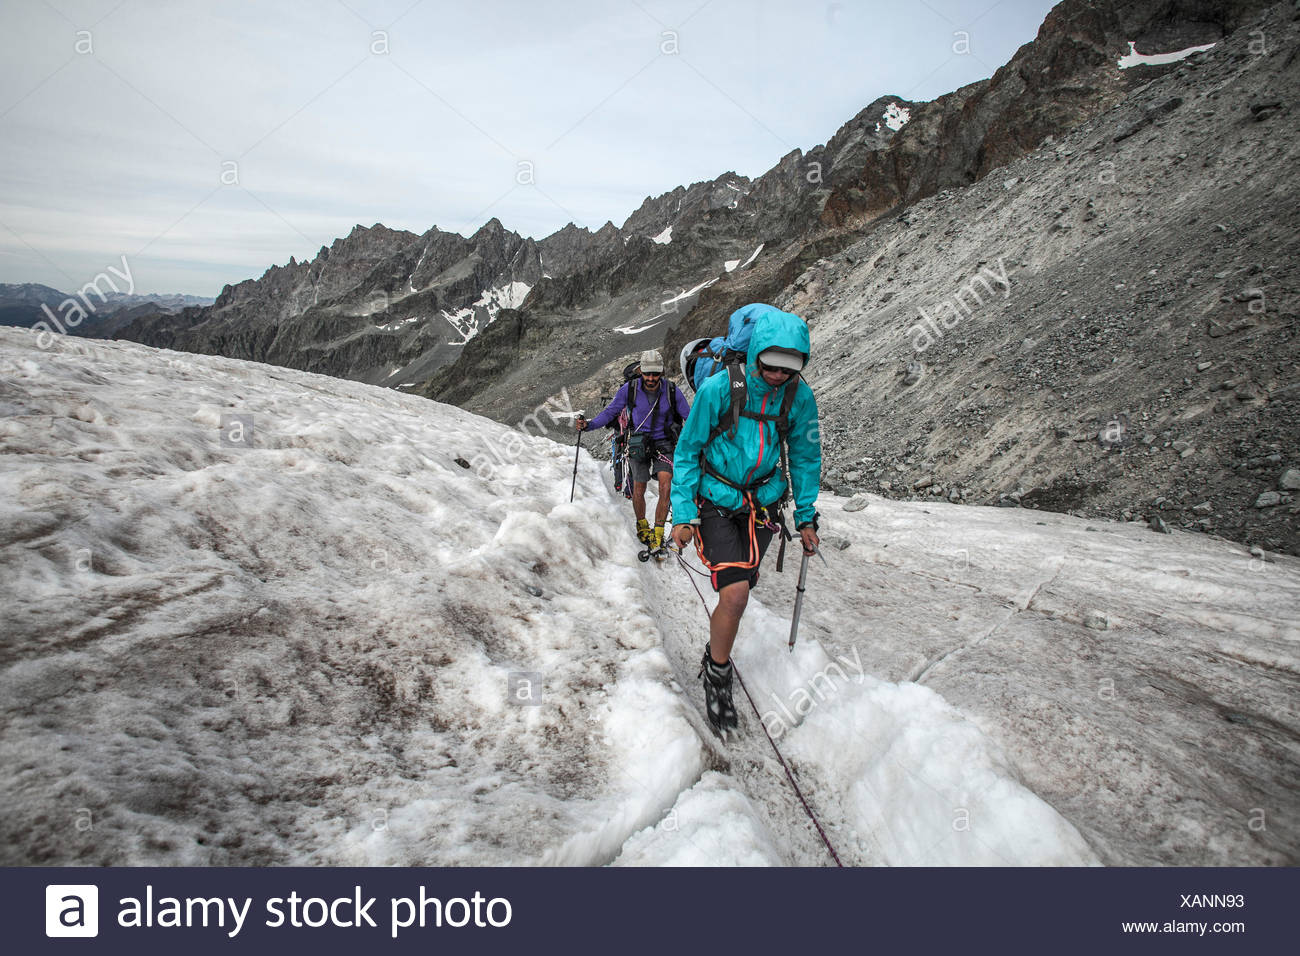 Series on trekking 'des Ecrins', Middle aged people hiking in the Glacier Blanc, france, alps - Stock Image